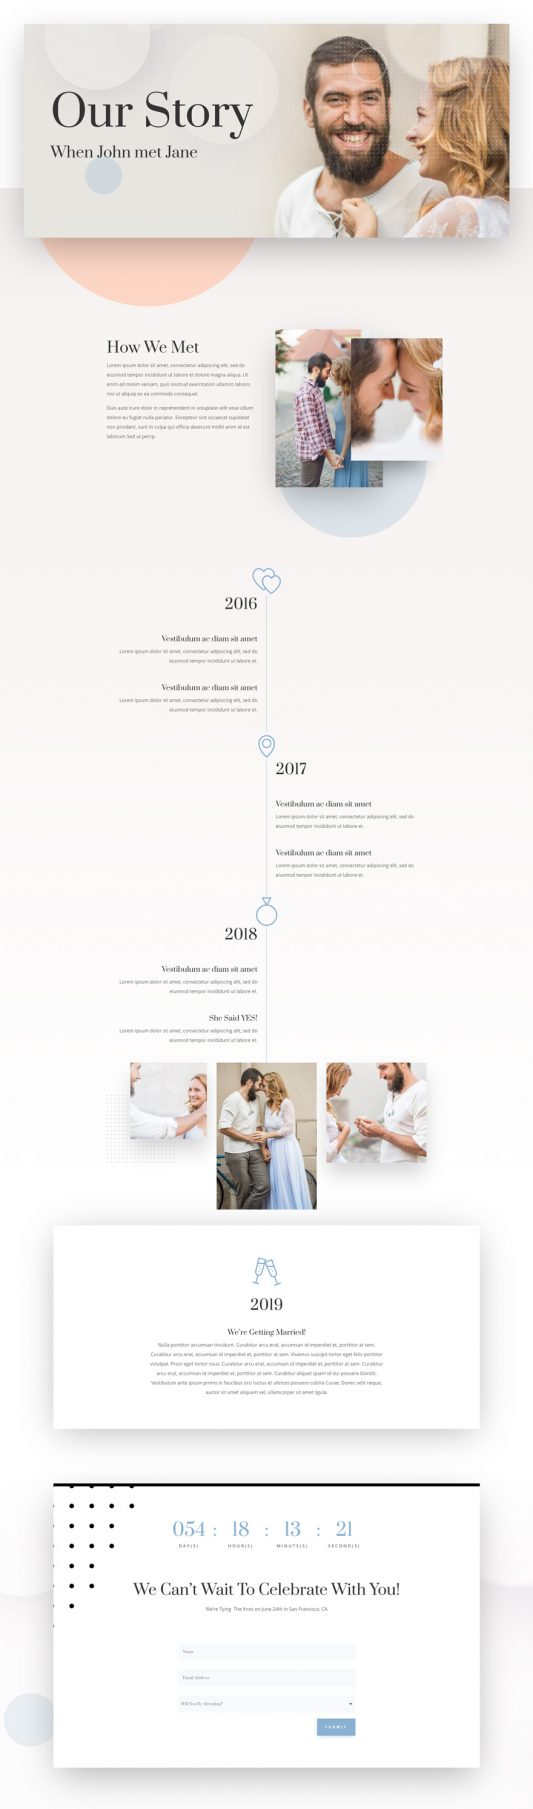 Wedding Engagement Web Design 8